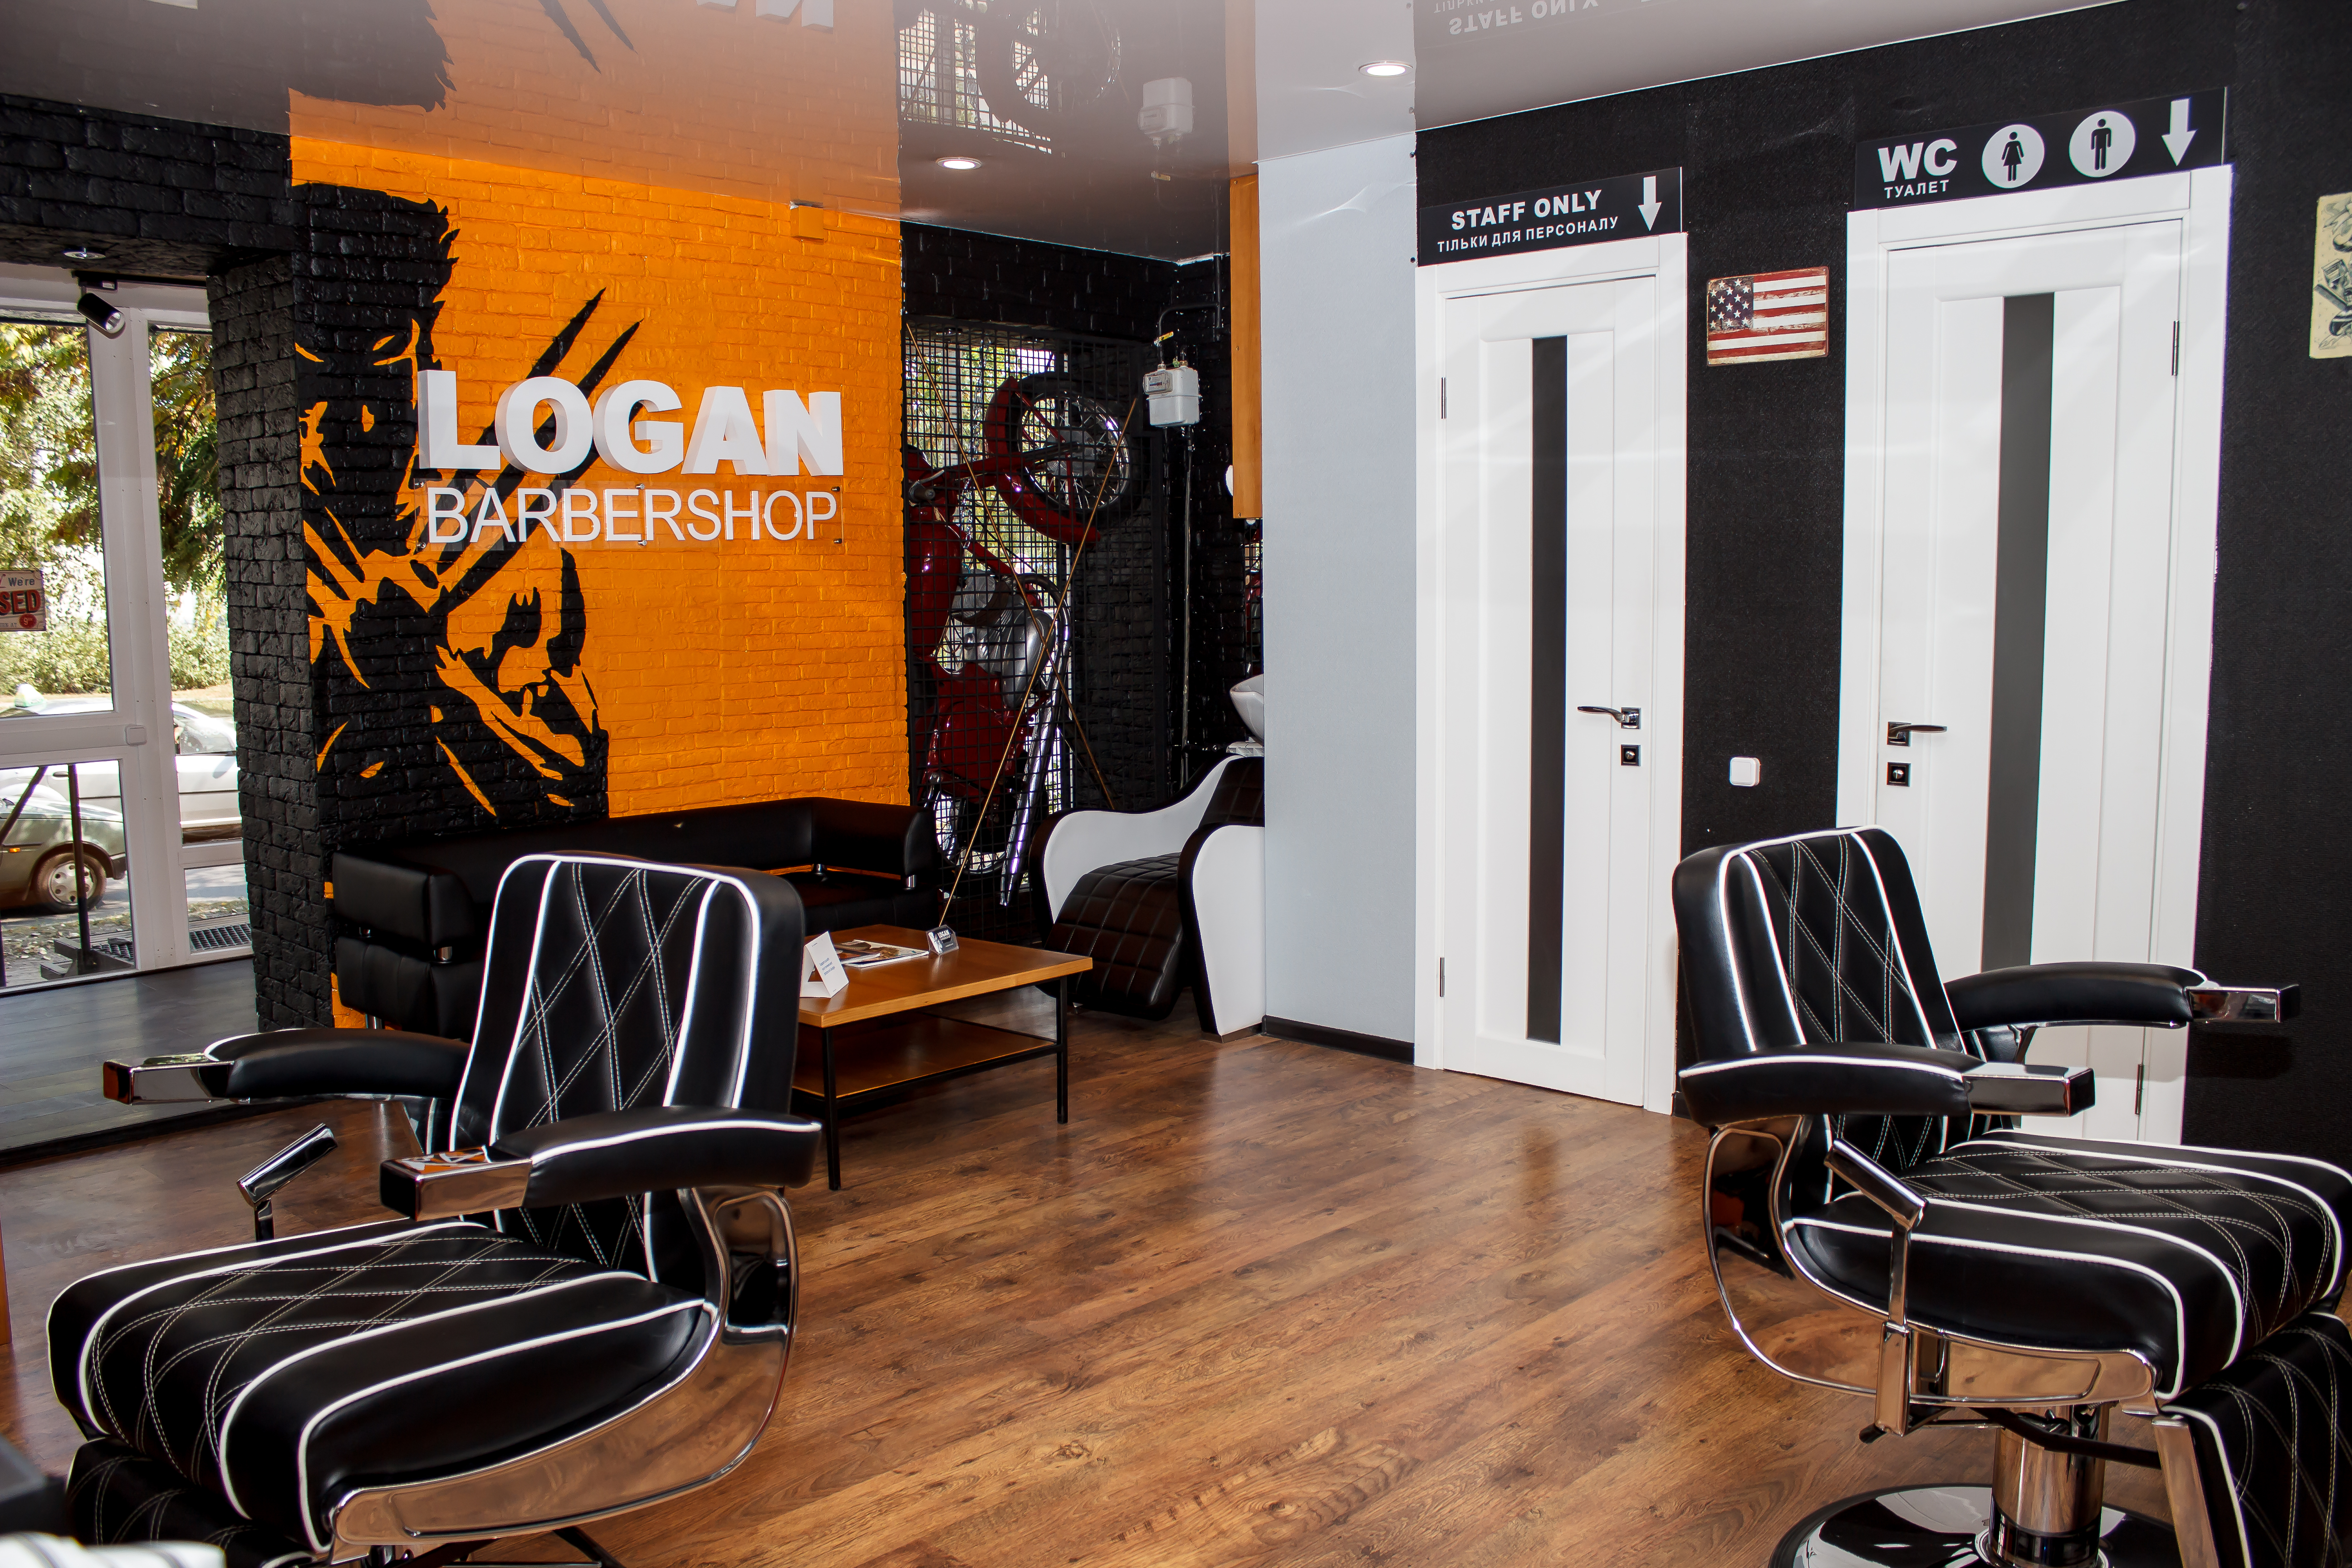 LOGAN Barbershop